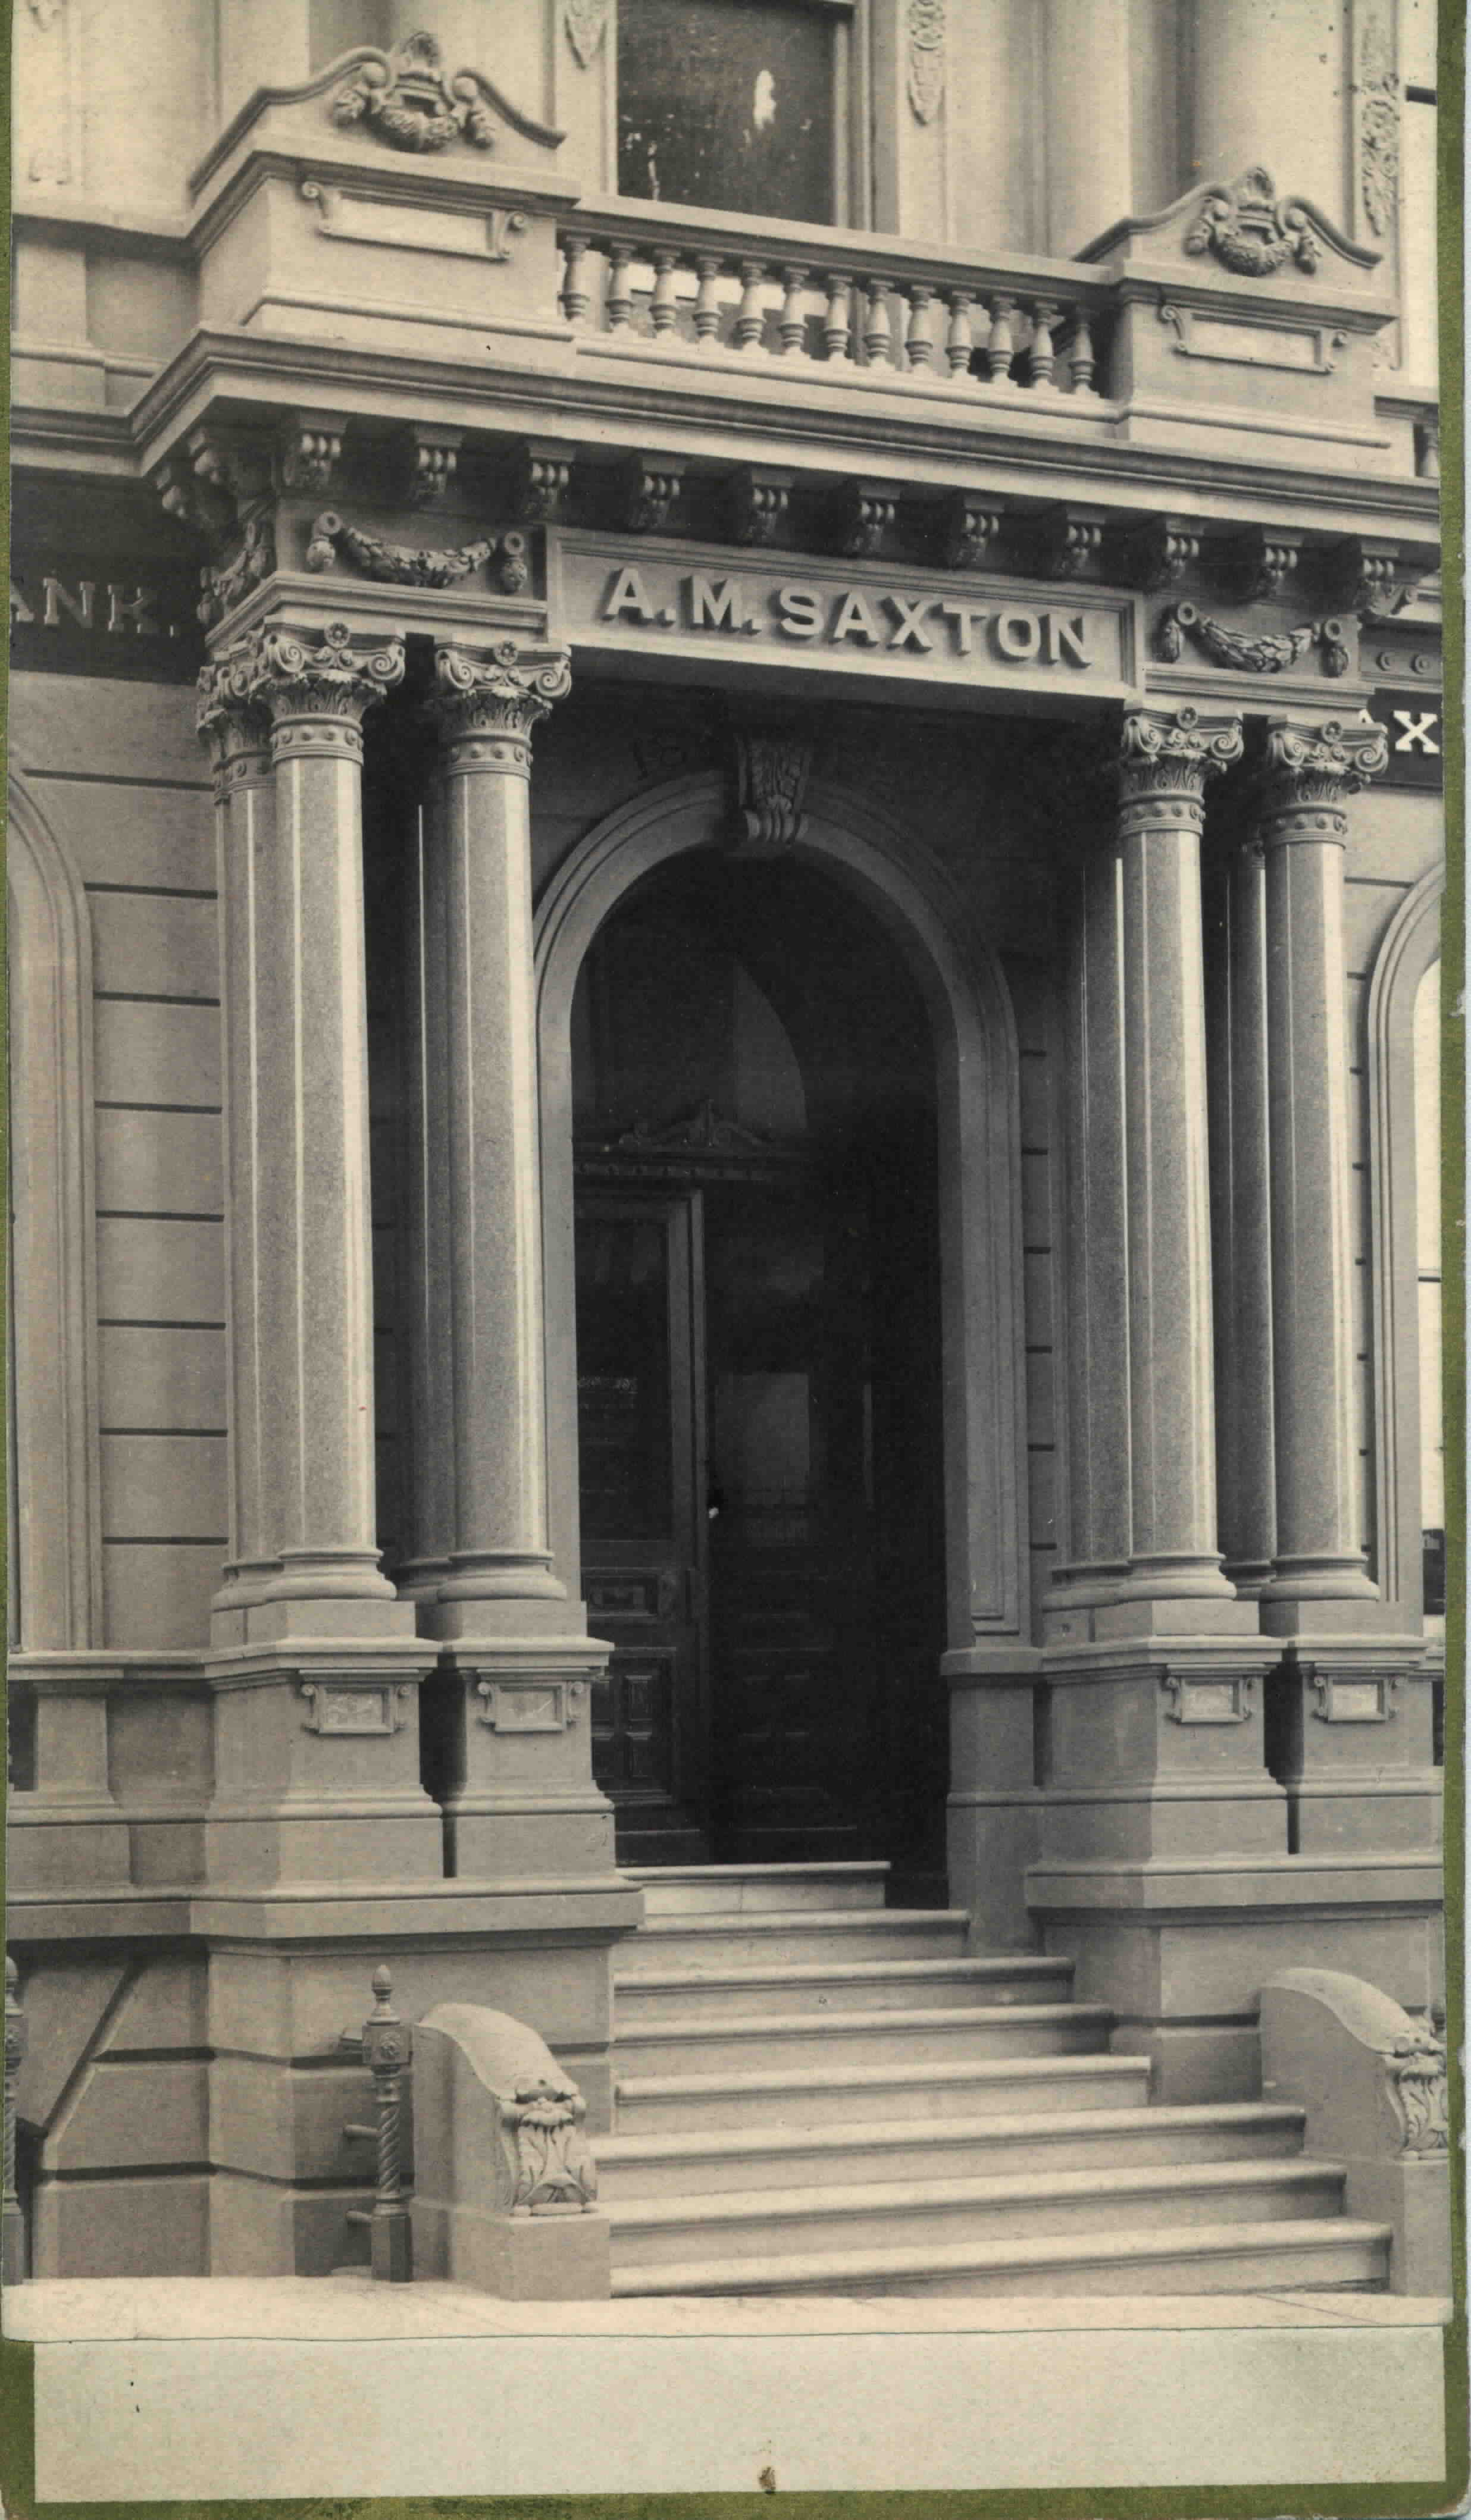 Close up of the Saxton National Bank entrance with A.M. Saxton engraved above the door.